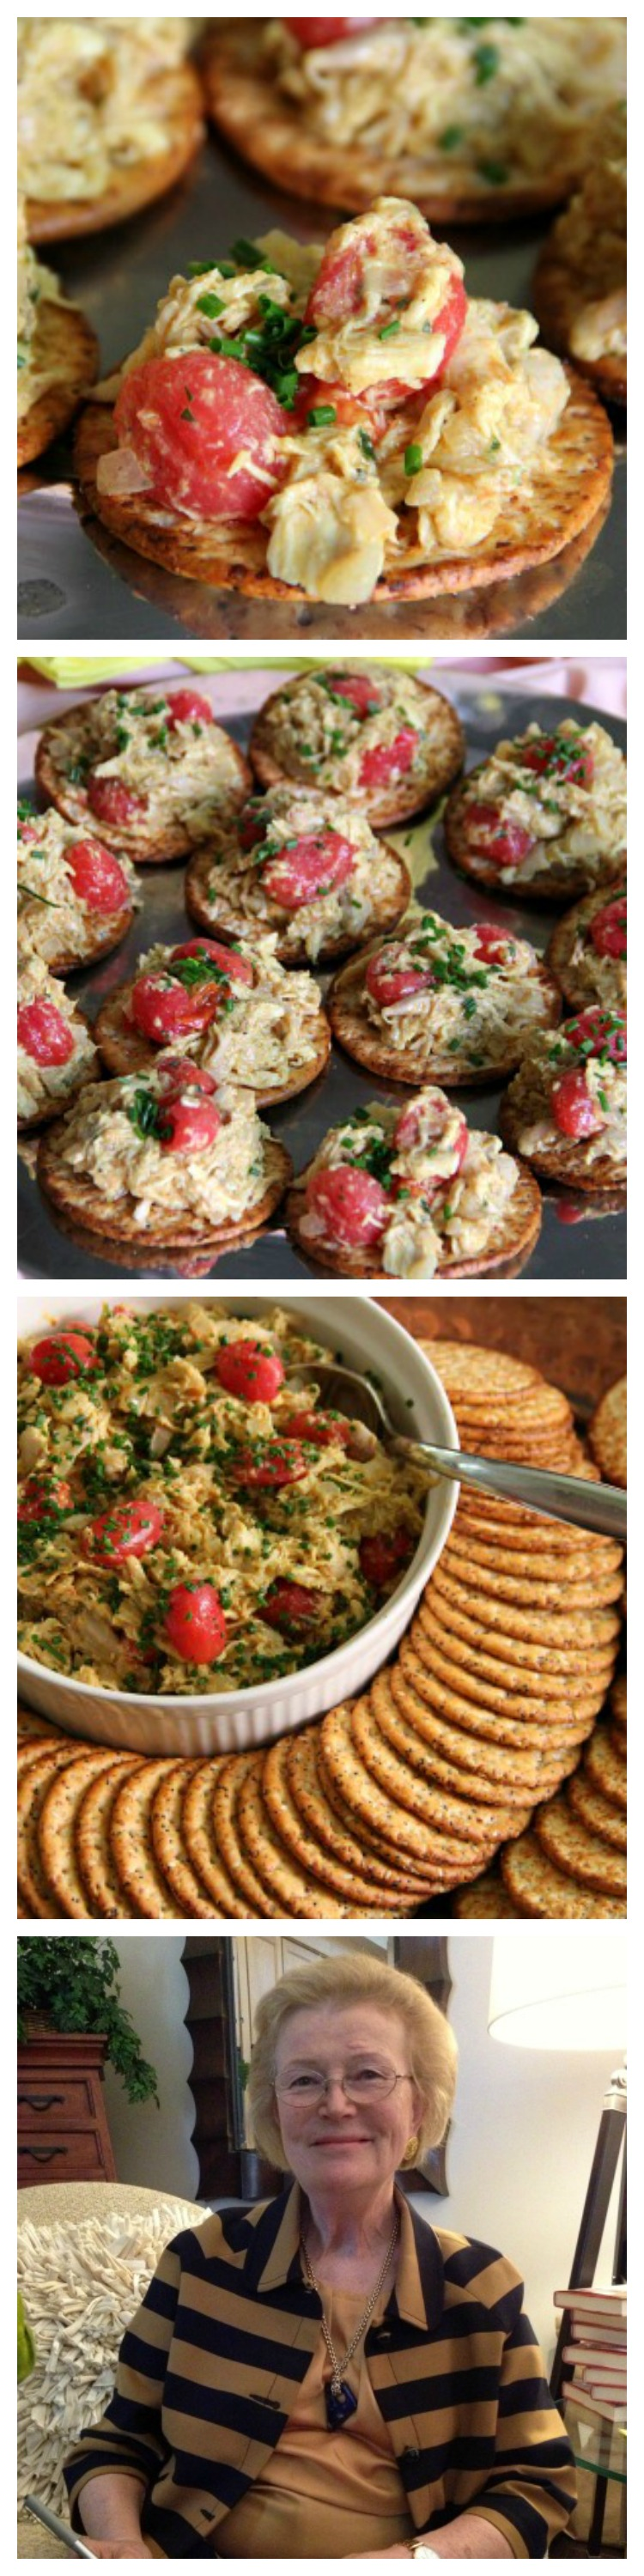 coronation-turkey-lightly-curried-turkey-salad-topped-with-fresh-cherry-tomatoes